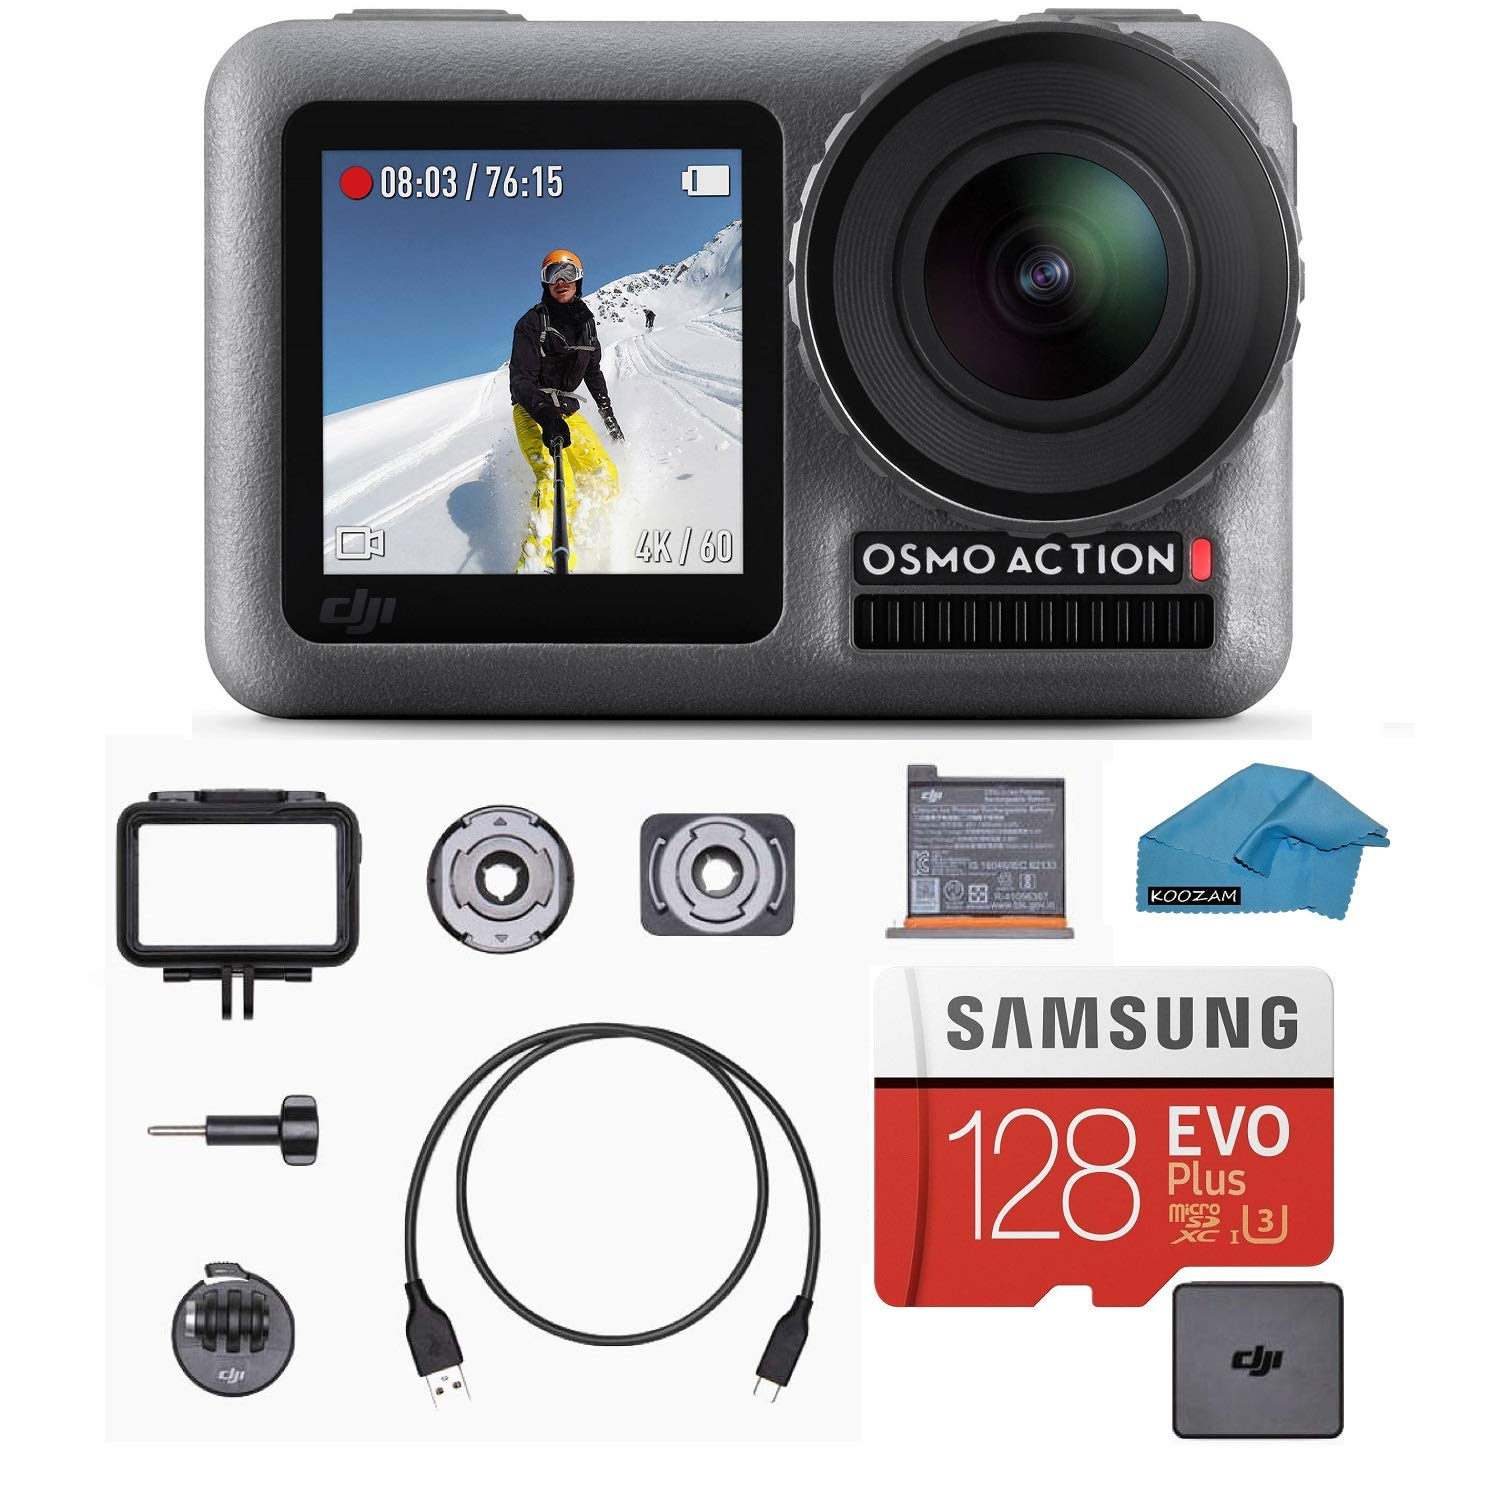 DJI OSMO Action Cam Digital Camera Bundle with 2 Displays 36FT/11M Waterproof 4K HDR-Video 12MP 145° Angle, 128gb Micro SD Card, Card Reader, Must Have Accessories by DJI